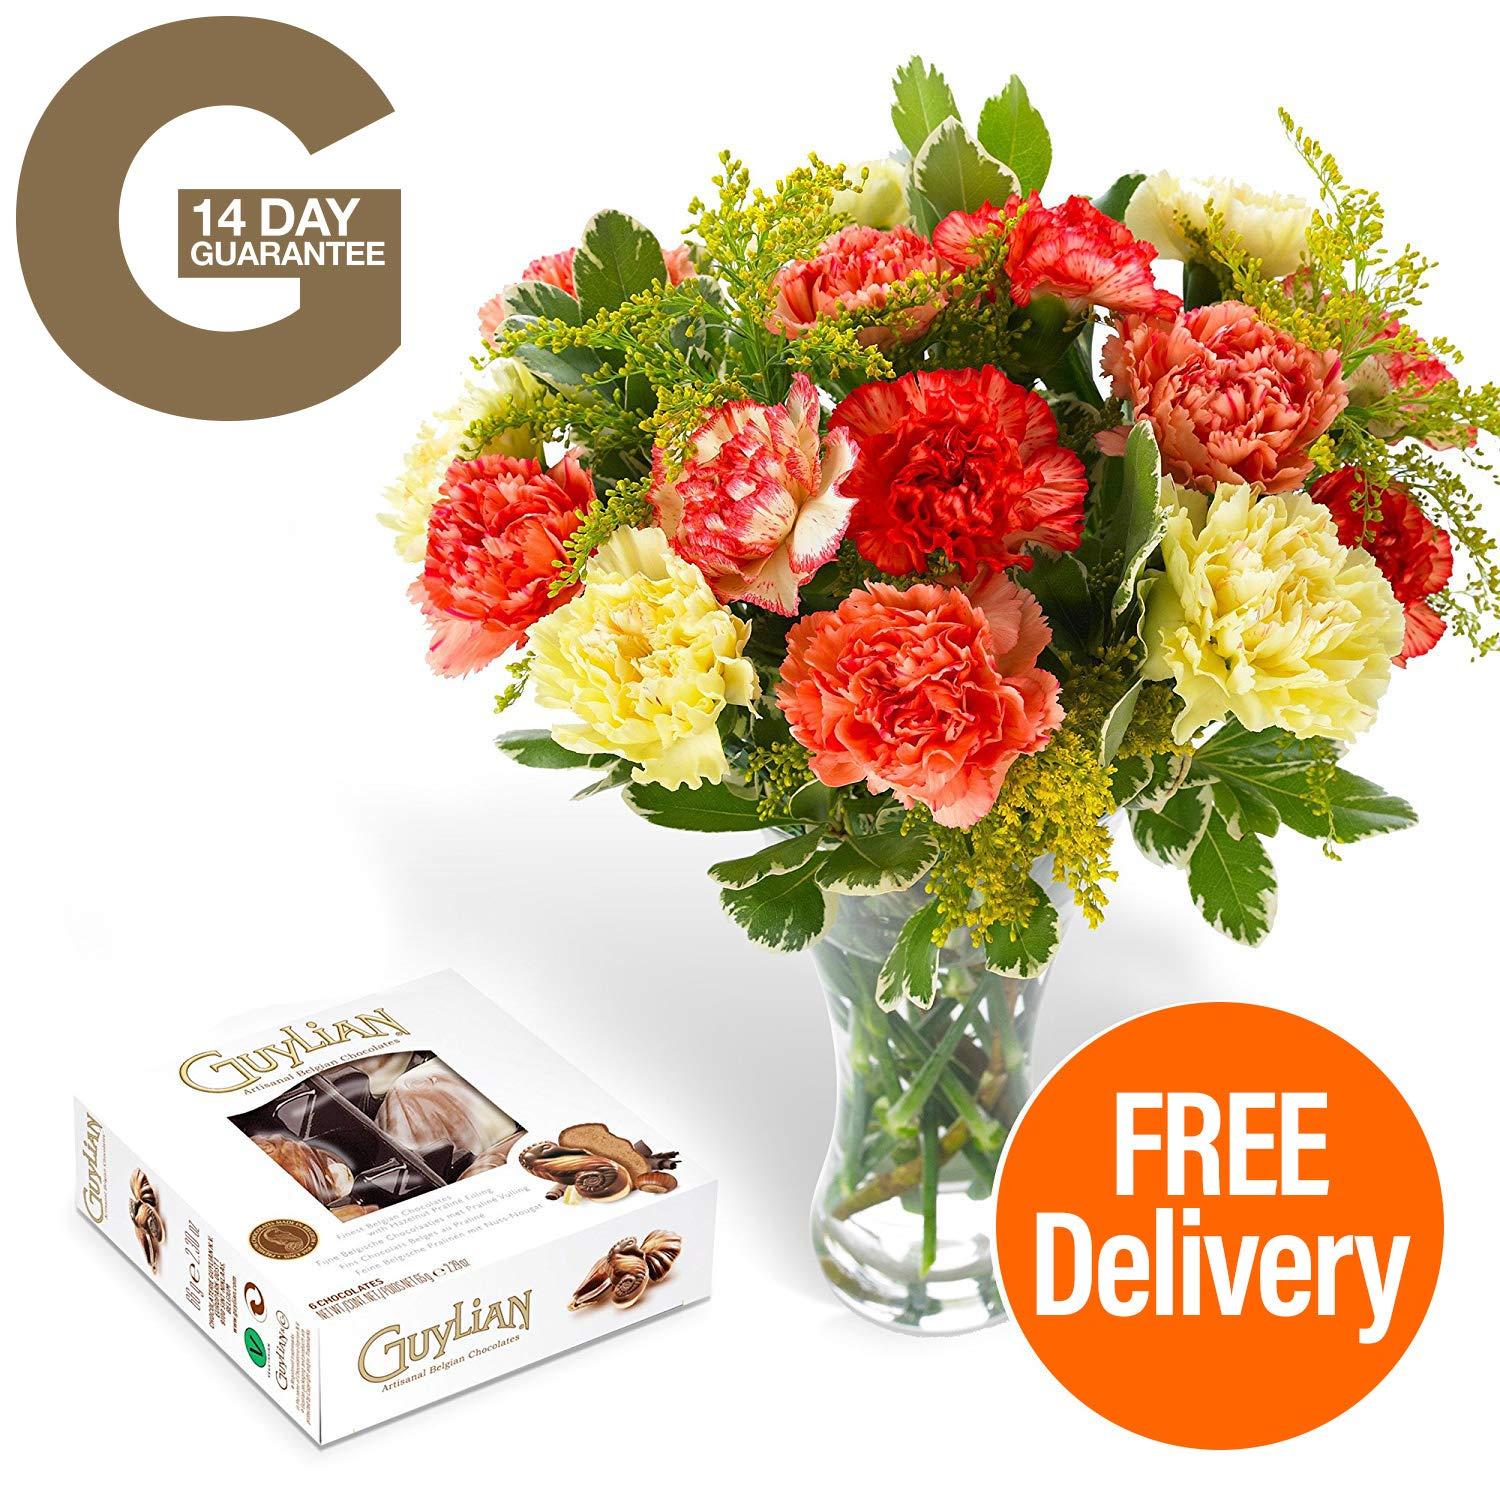 Fresh flowers delivered free uk delivery luxury carnation fresh flowers delivered free uk delivery luxury carnation bouquet with free chocolates flower food and bonus ebook guide perfect for birthdays izmirmasajfo